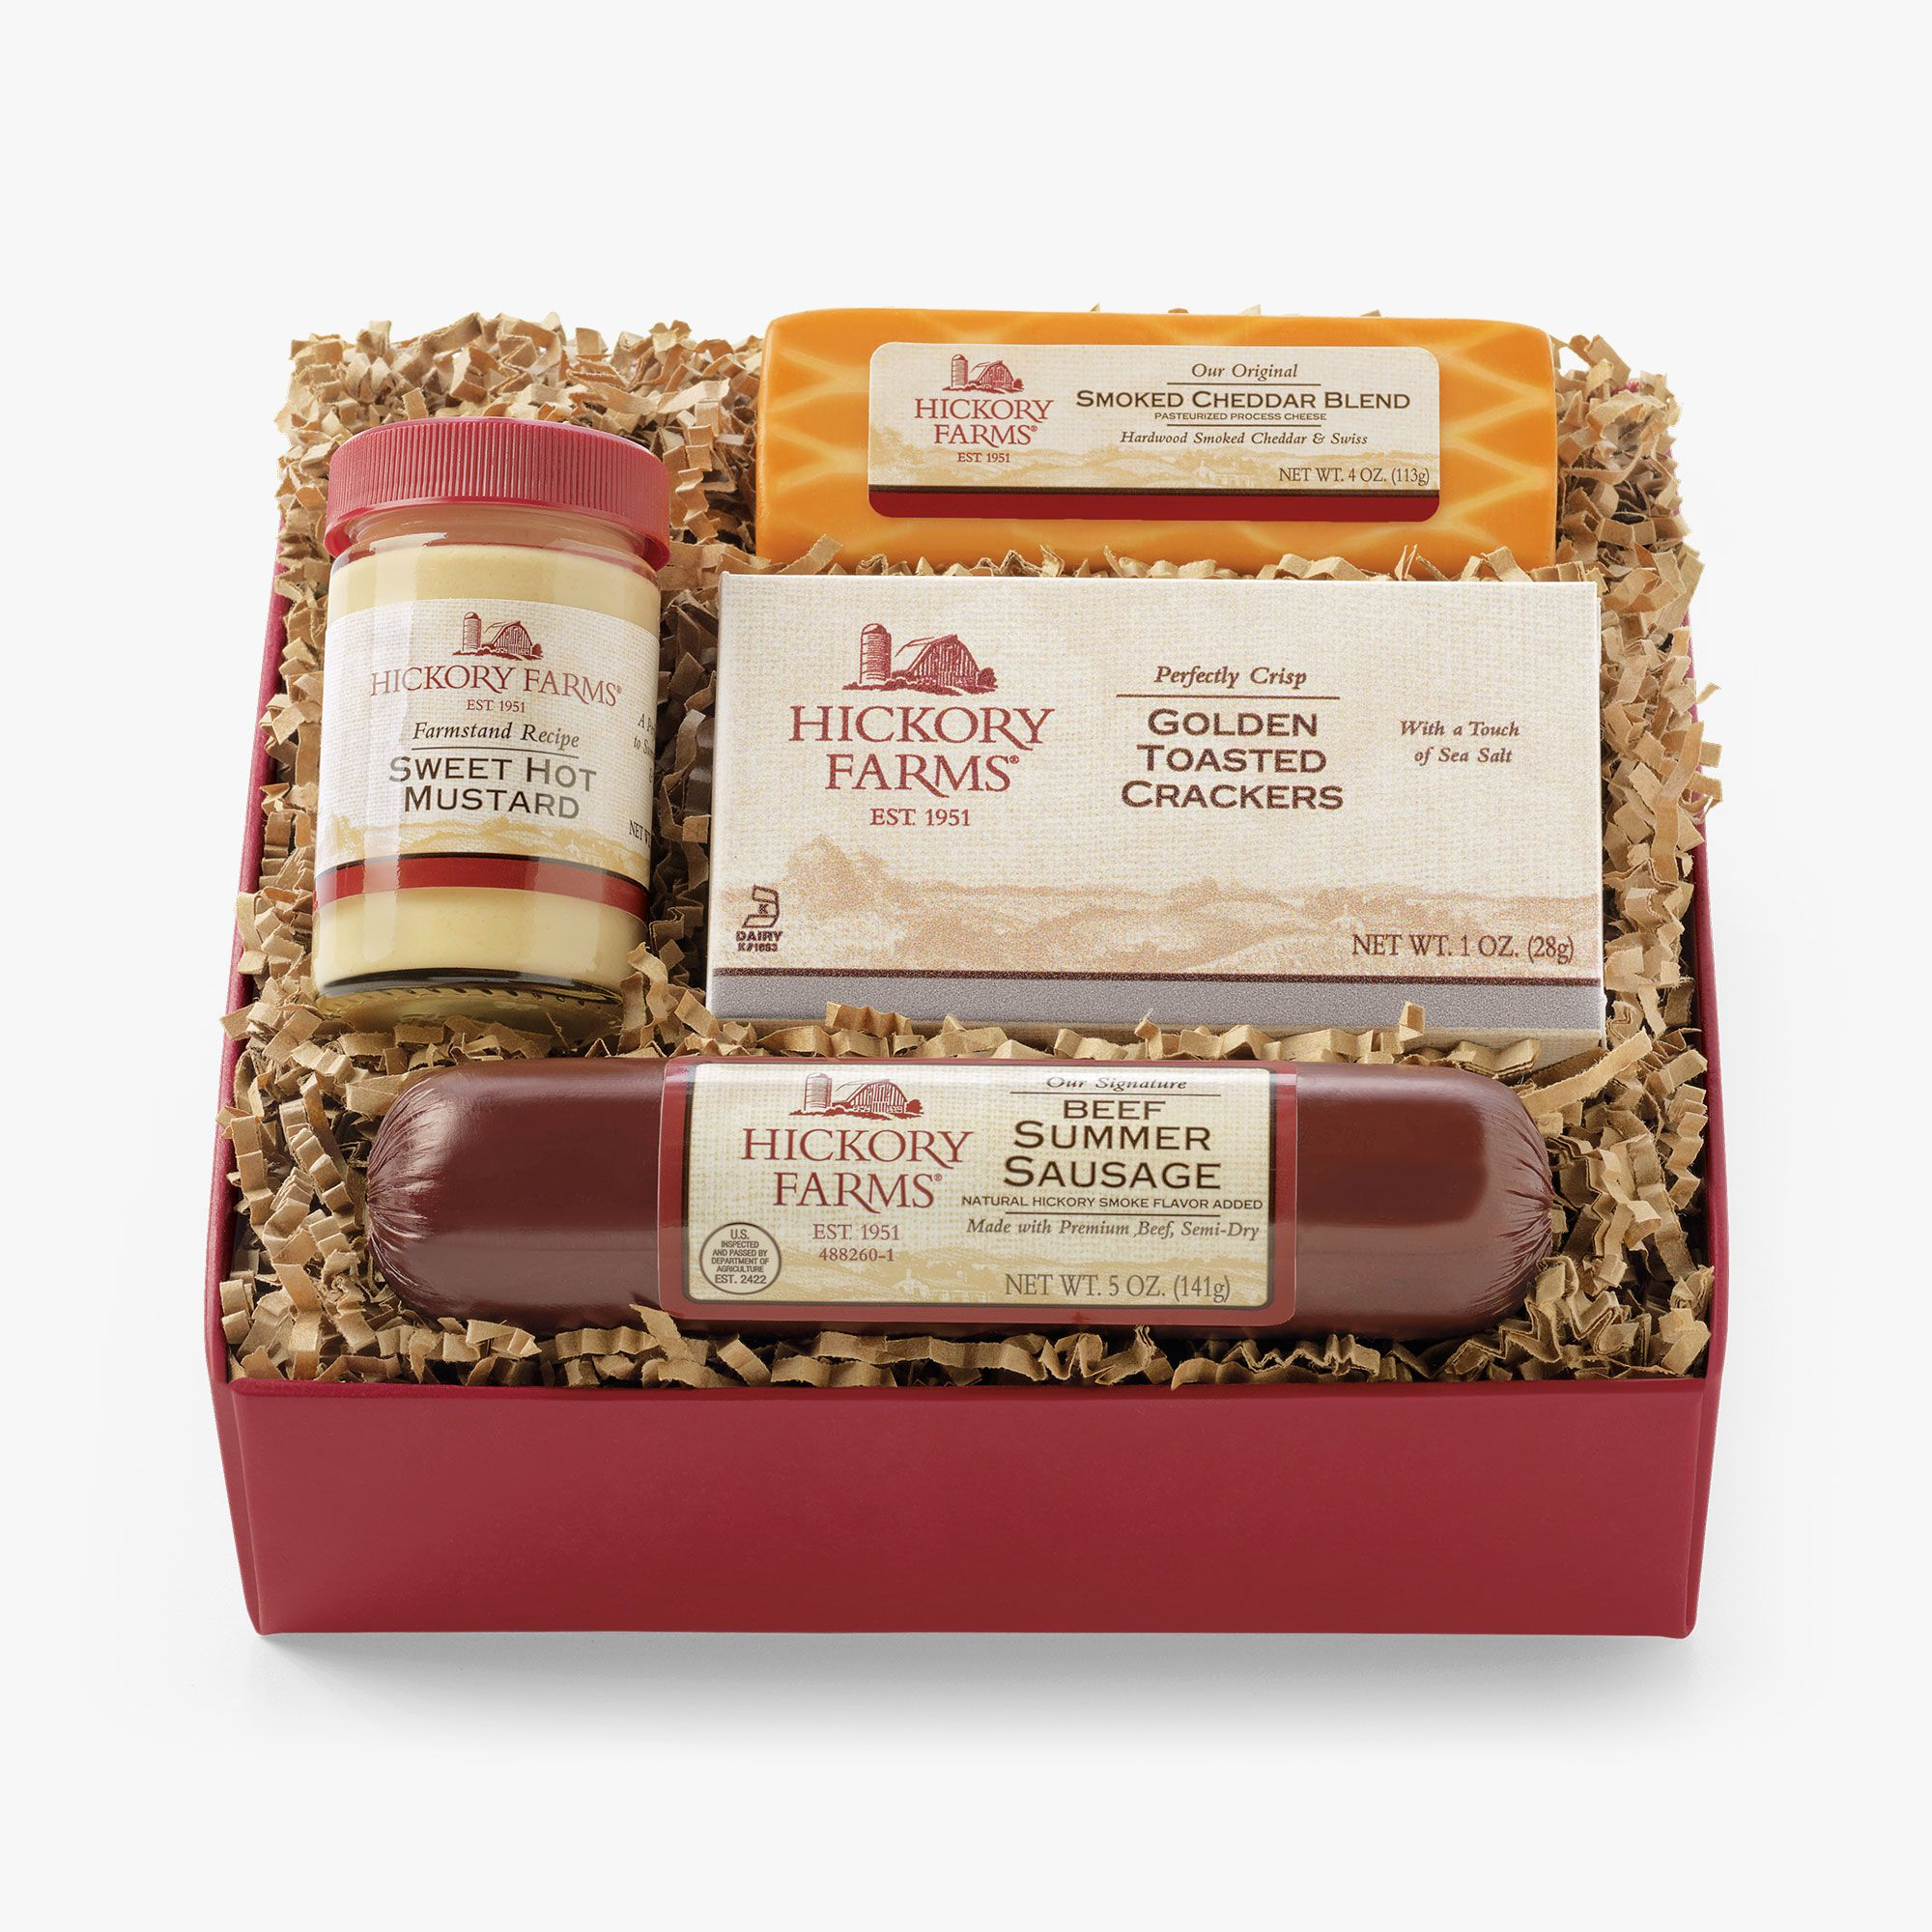 Beef Hickory Sampler Gift Box Gift | Purchase Our Gourmet Sausage ...